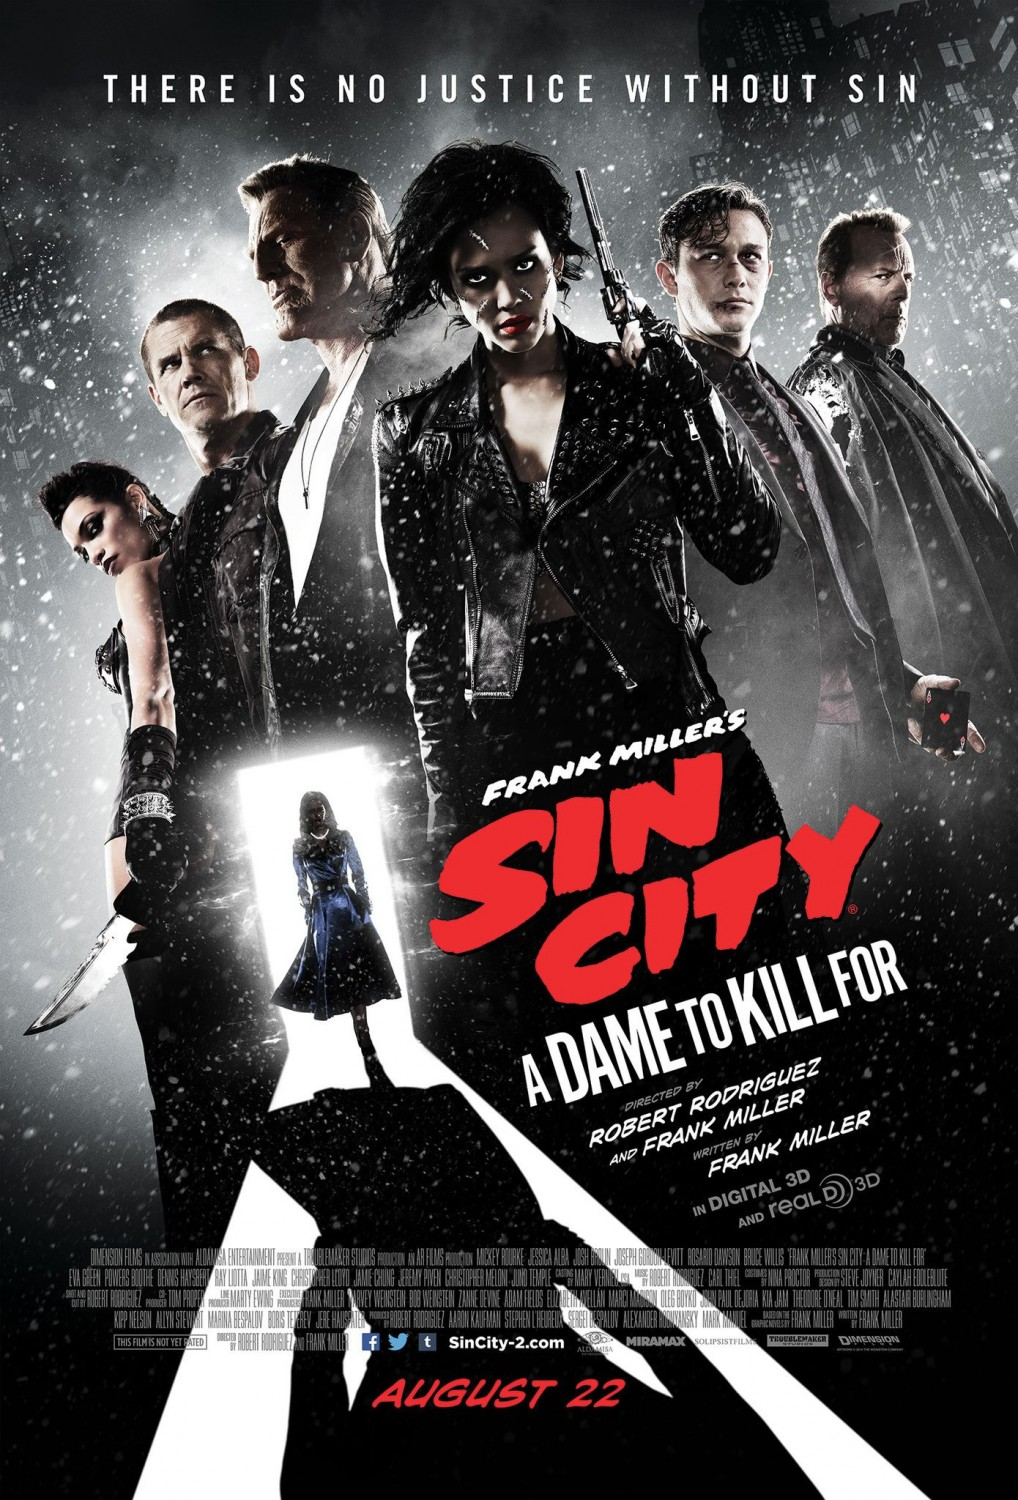 Sin City: A dame to kill for no llegará a los cines.